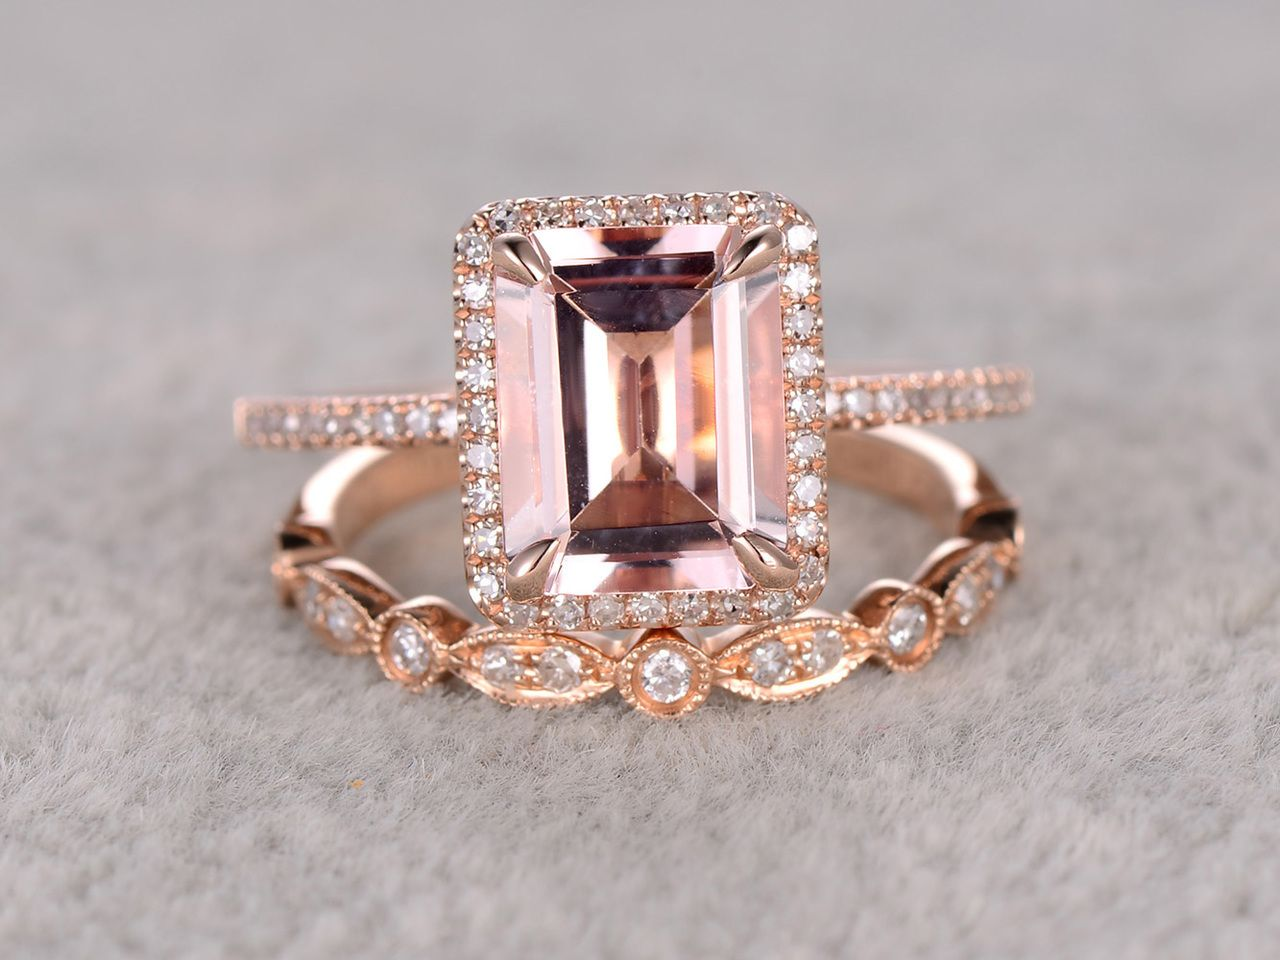 25 to 3 carat emerald cut morganite engagement ring set diamond bridal ring 14k rose gold - Morganite Wedding Ring Set